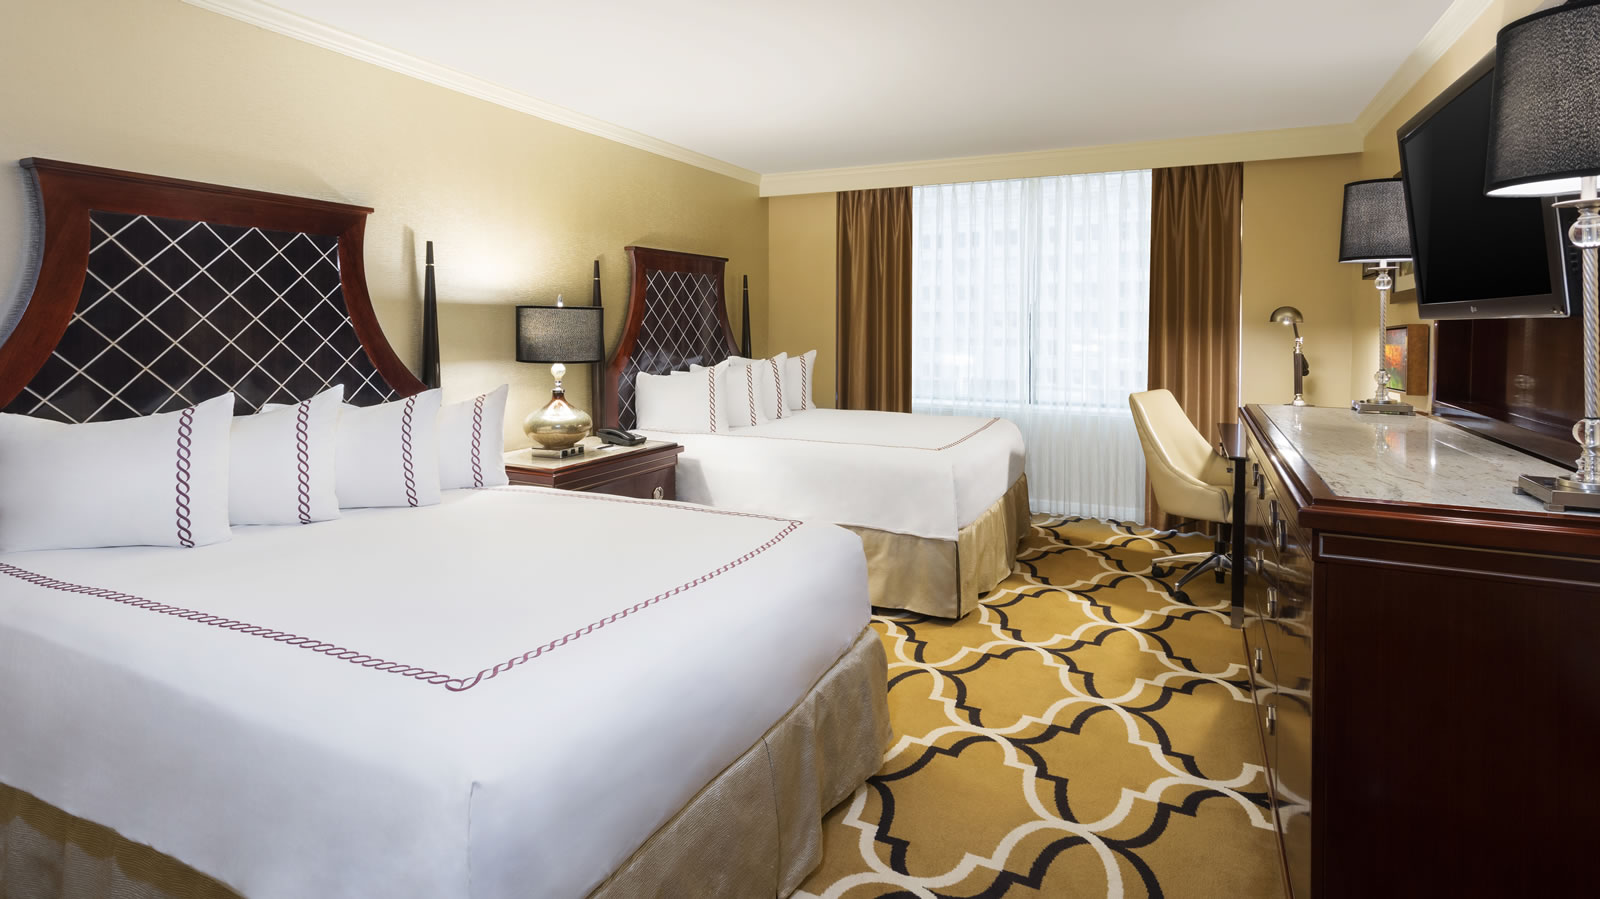 Picture of: Hotel Rooms And Suites In New Orleans New Orleans Hotel Accommodations